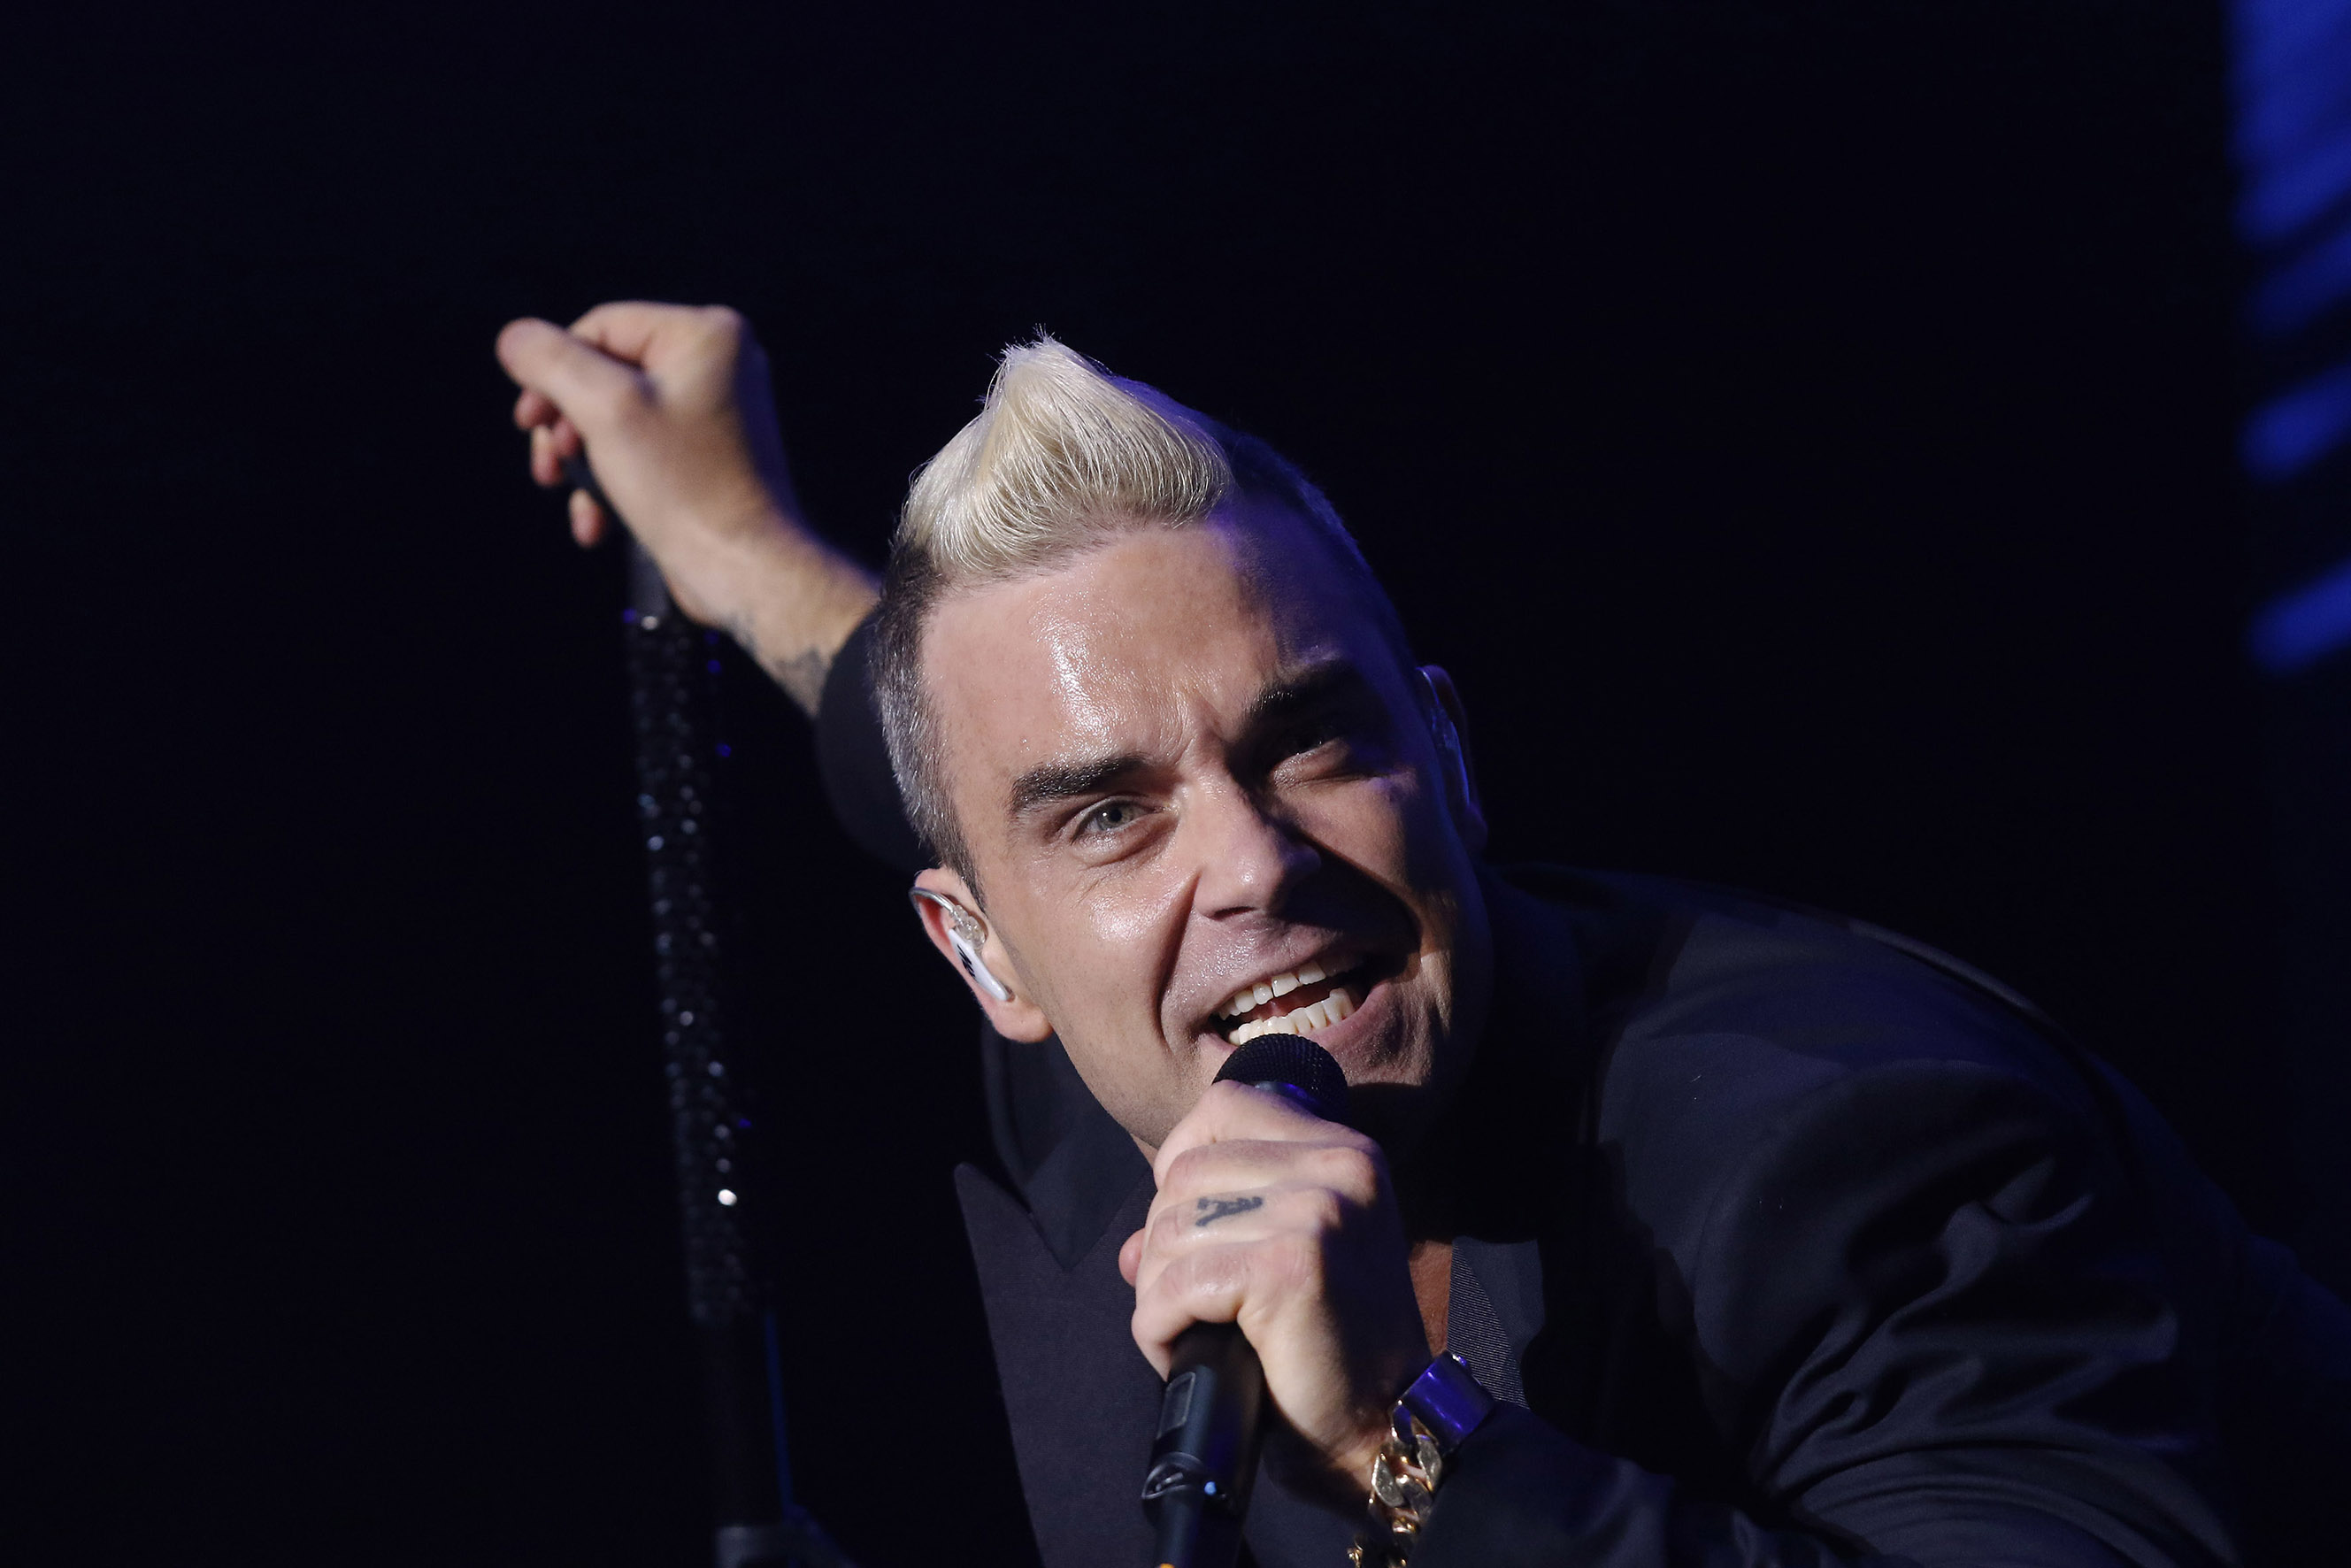 CONCERT ROBBIE WILLIAMS